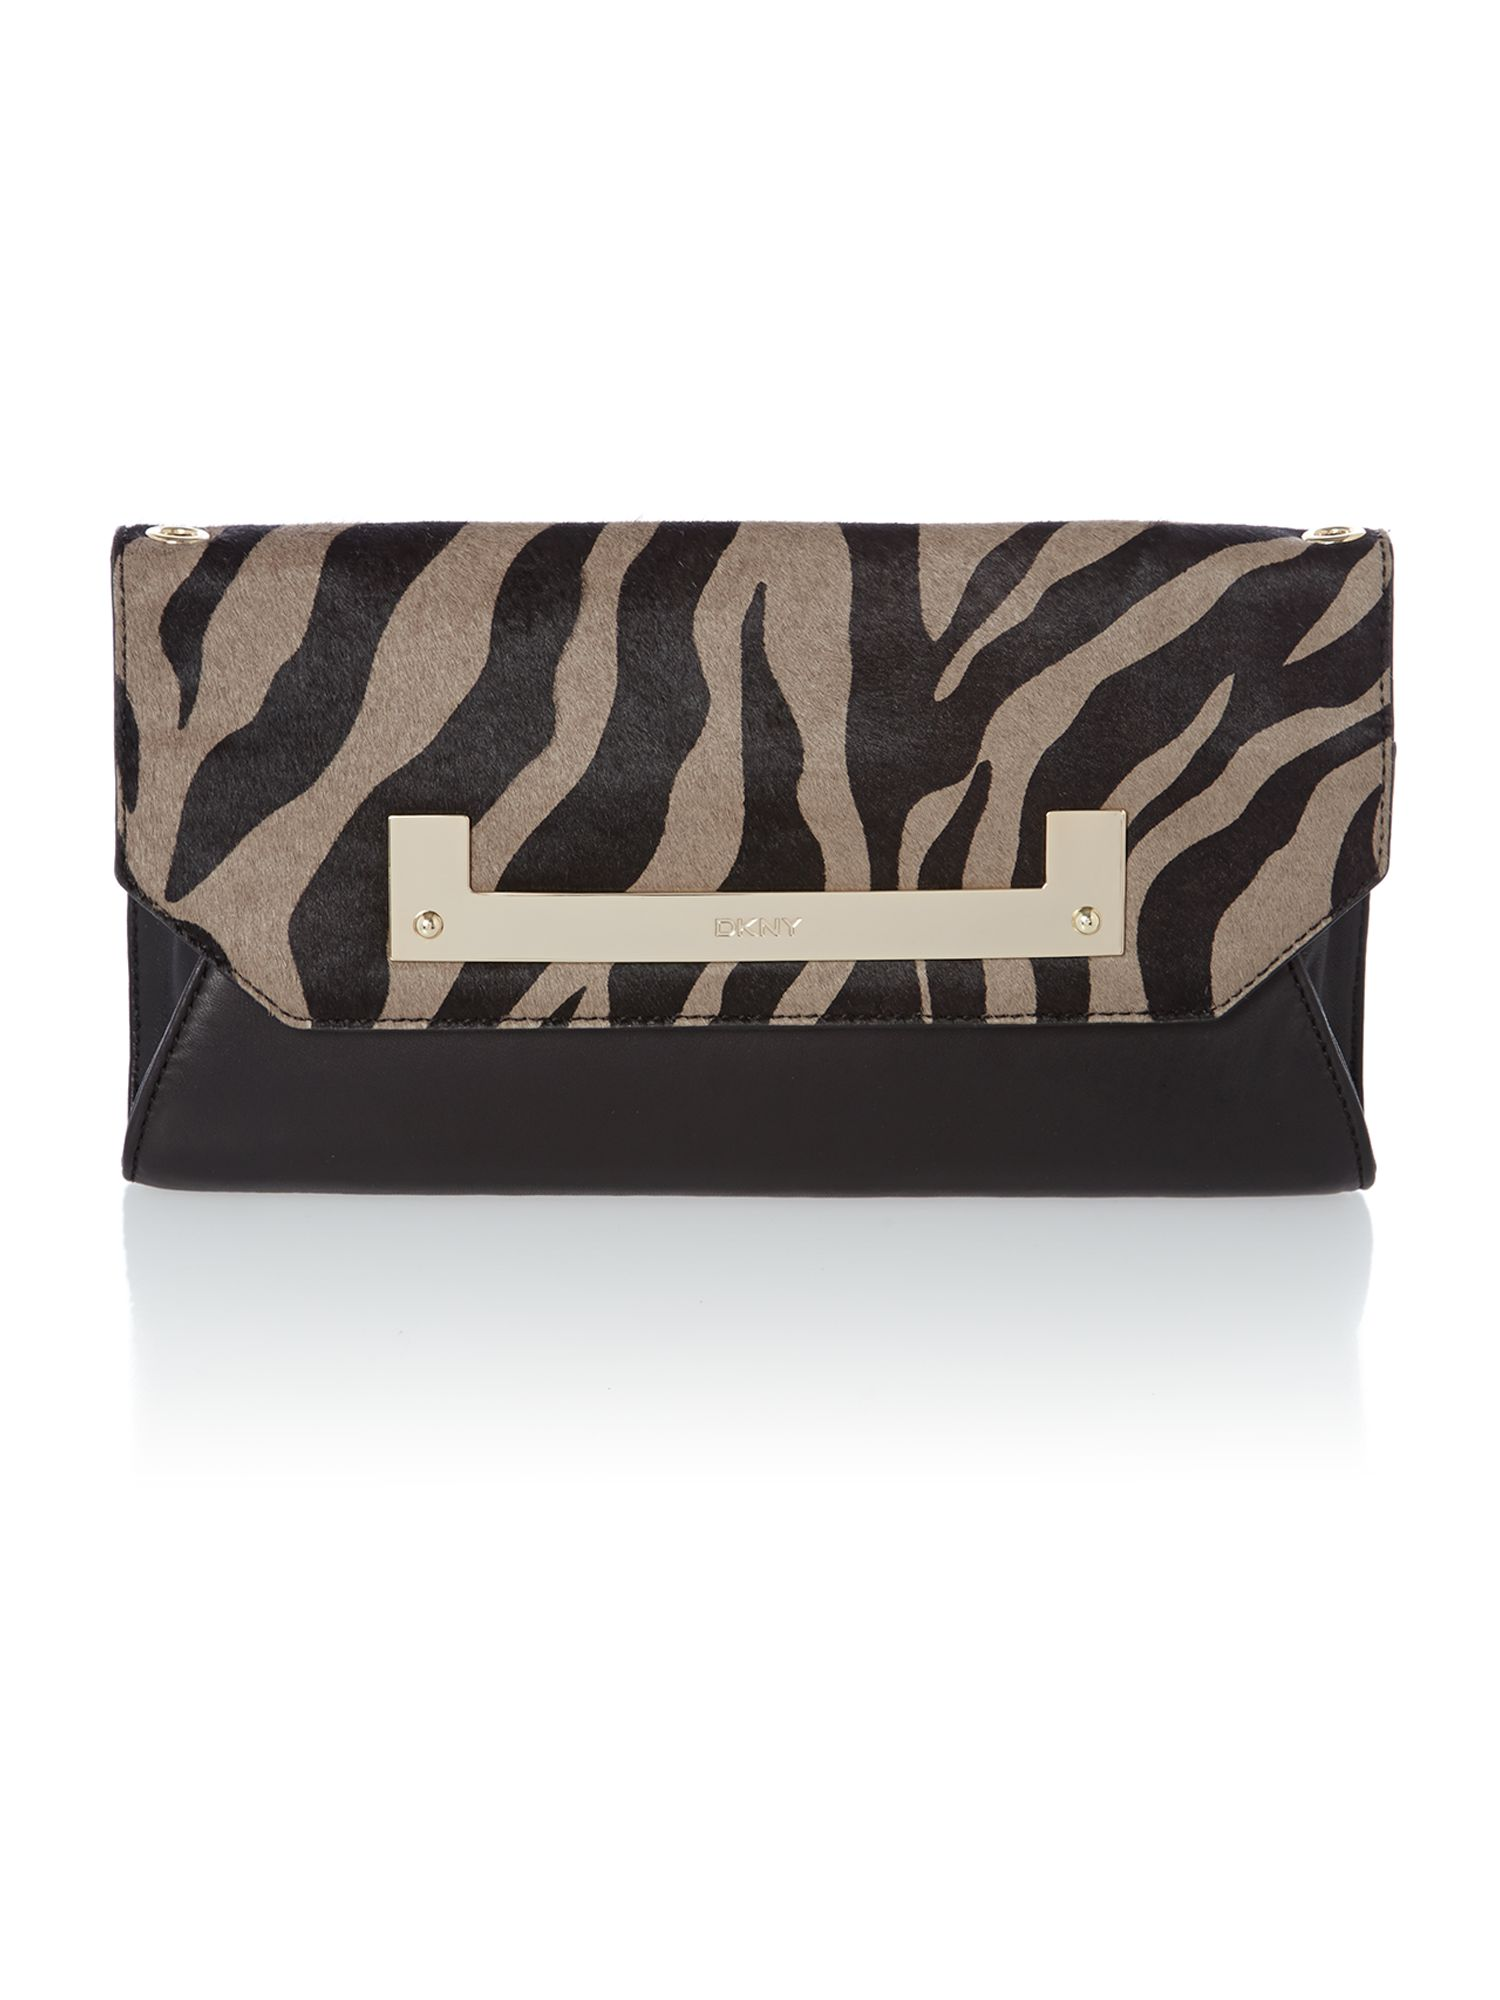 Fashion multi-coloured flap over clutch bag